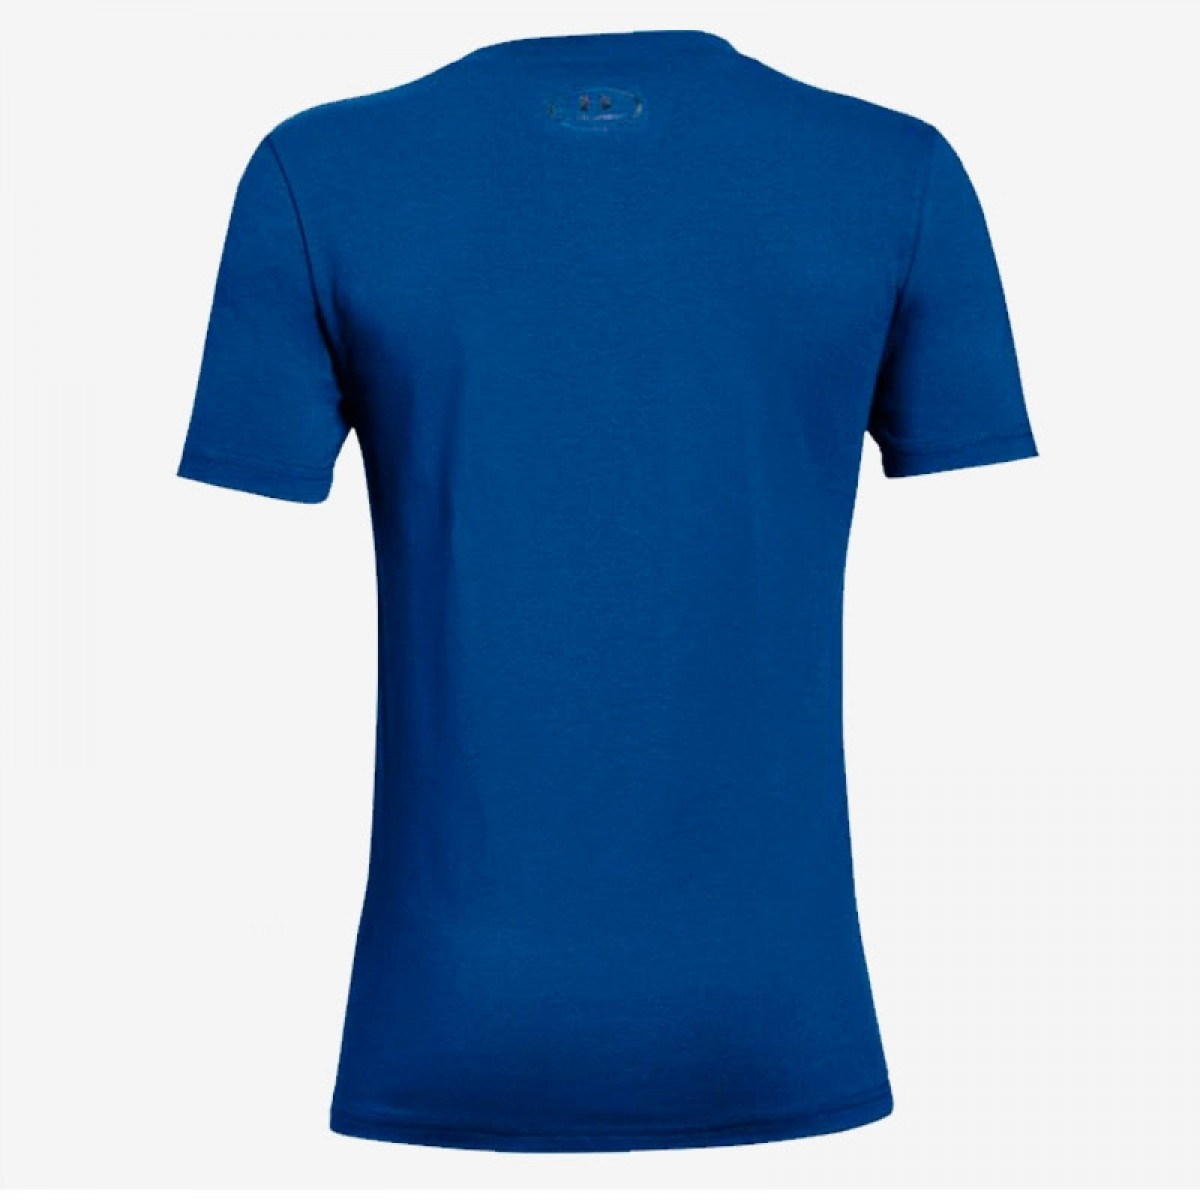 UA SC30 Player Jr Tee 'Blue' 1323434-400